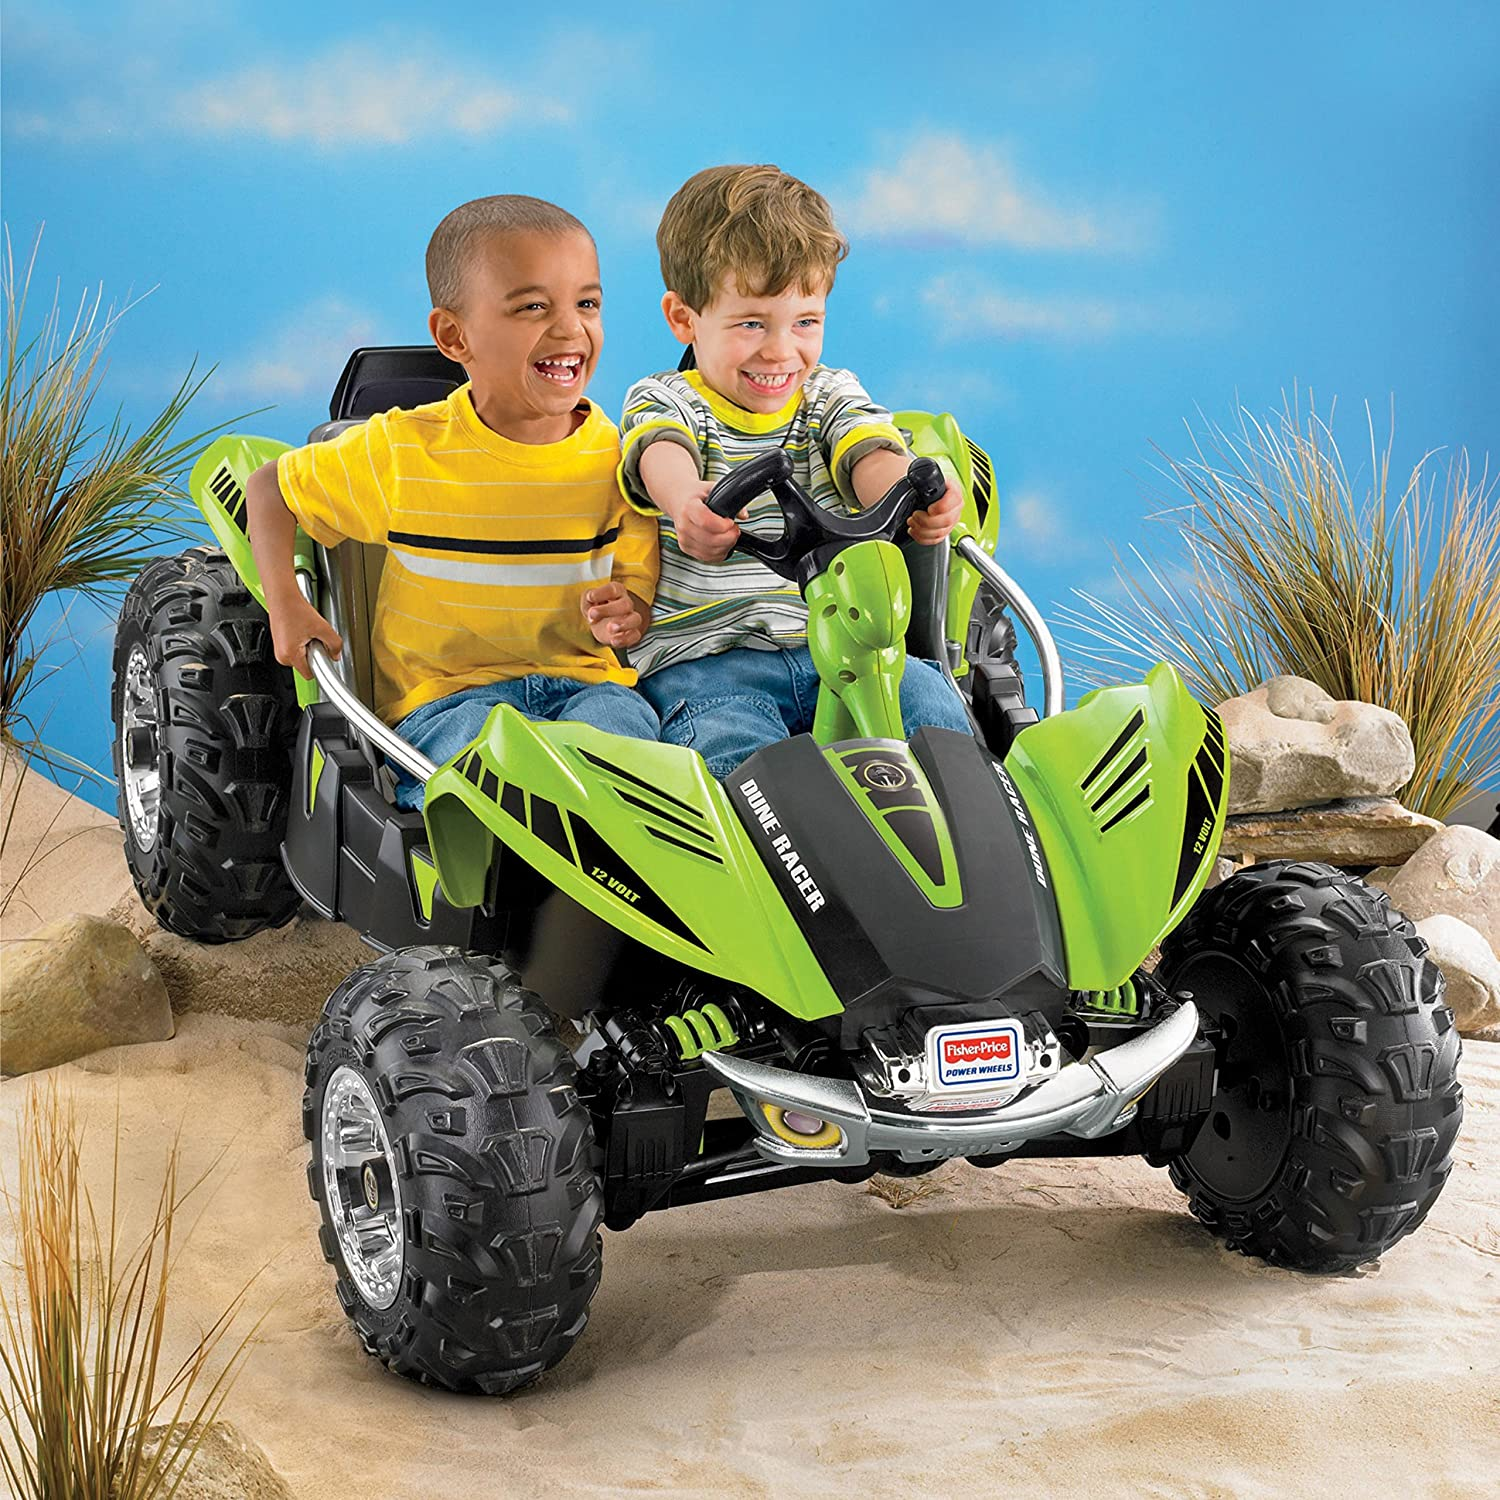 Power Wheels vs Best Choice